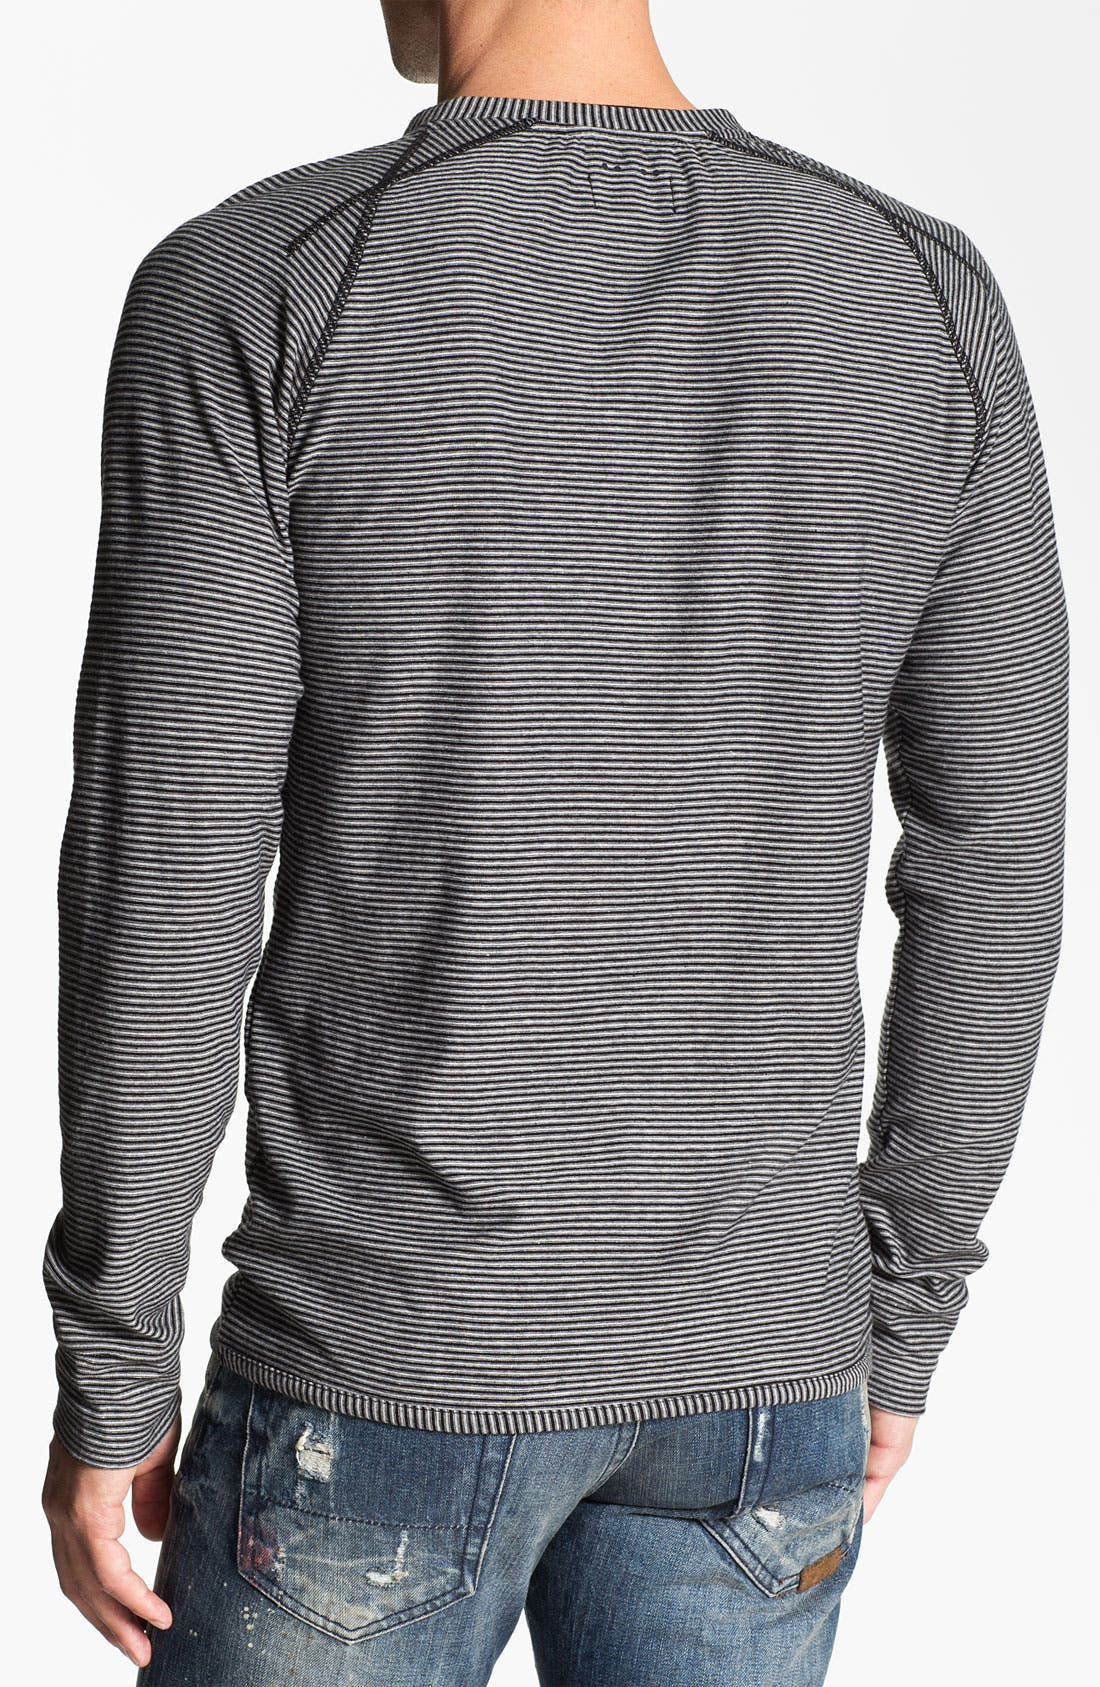 Alternate Image 2  - J.C. Rags Stripe Raglan Sleeve Henley